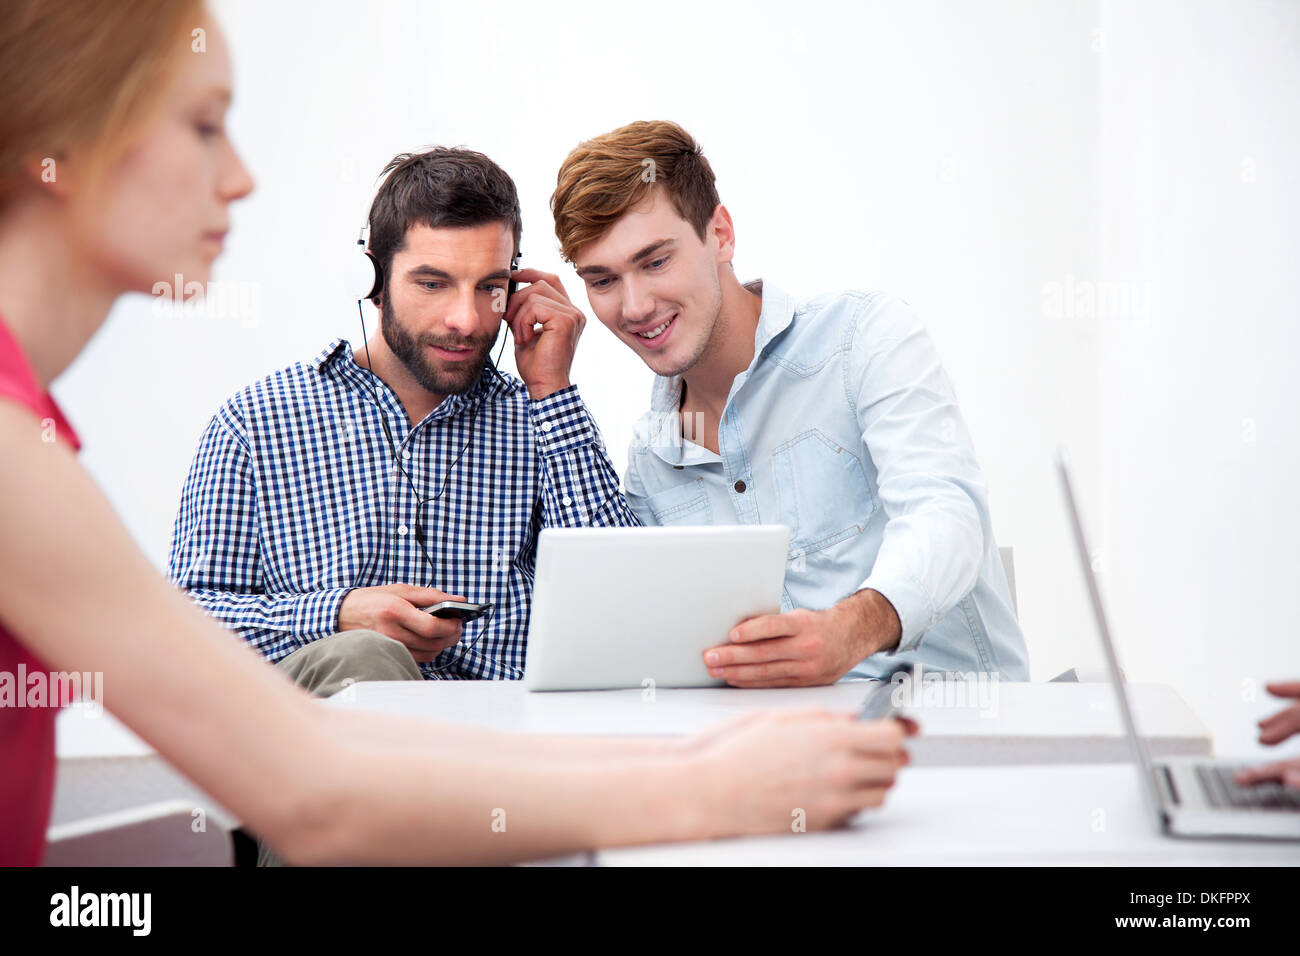 Two male colleagues using digital tablet - Stock Image